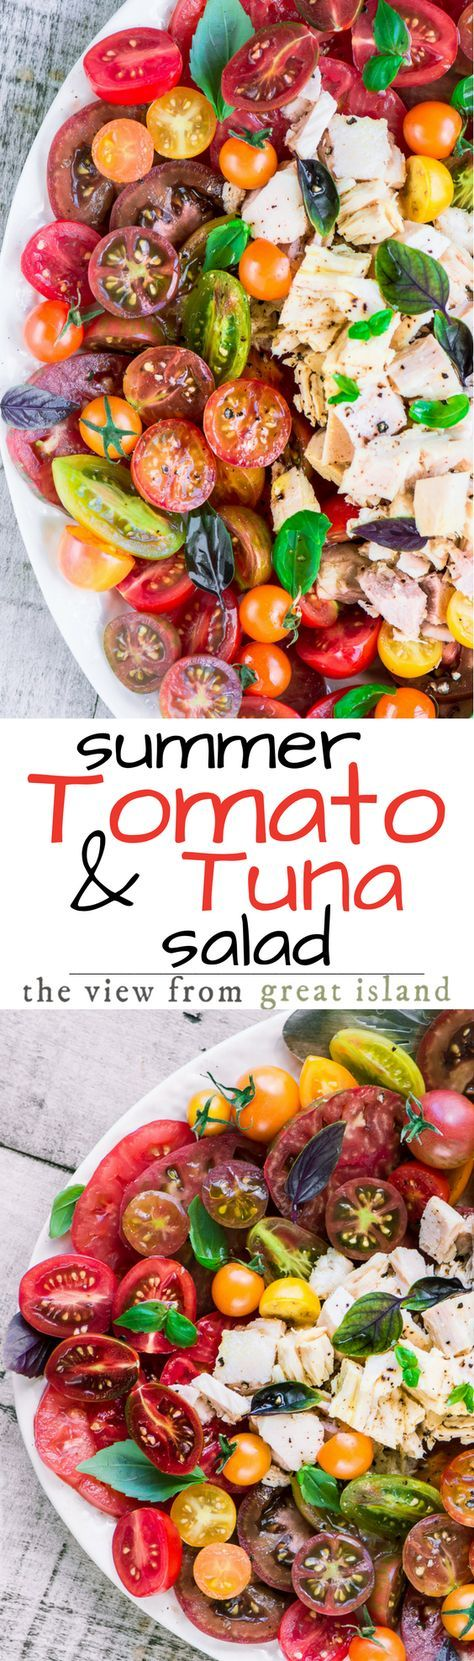 My Summer Tomato and Tuna Salad is in the Mediterranean tradition of serving up healthy seasonal food simply and There's no need for heavy sauces or dressings, these ingredients can stand on their own, with maybe a dousing of the best olive oil in the house. | main course salad | healthy dinner | seafood | fish | 30 minute meal | whole 30 | gluten free | paleo |